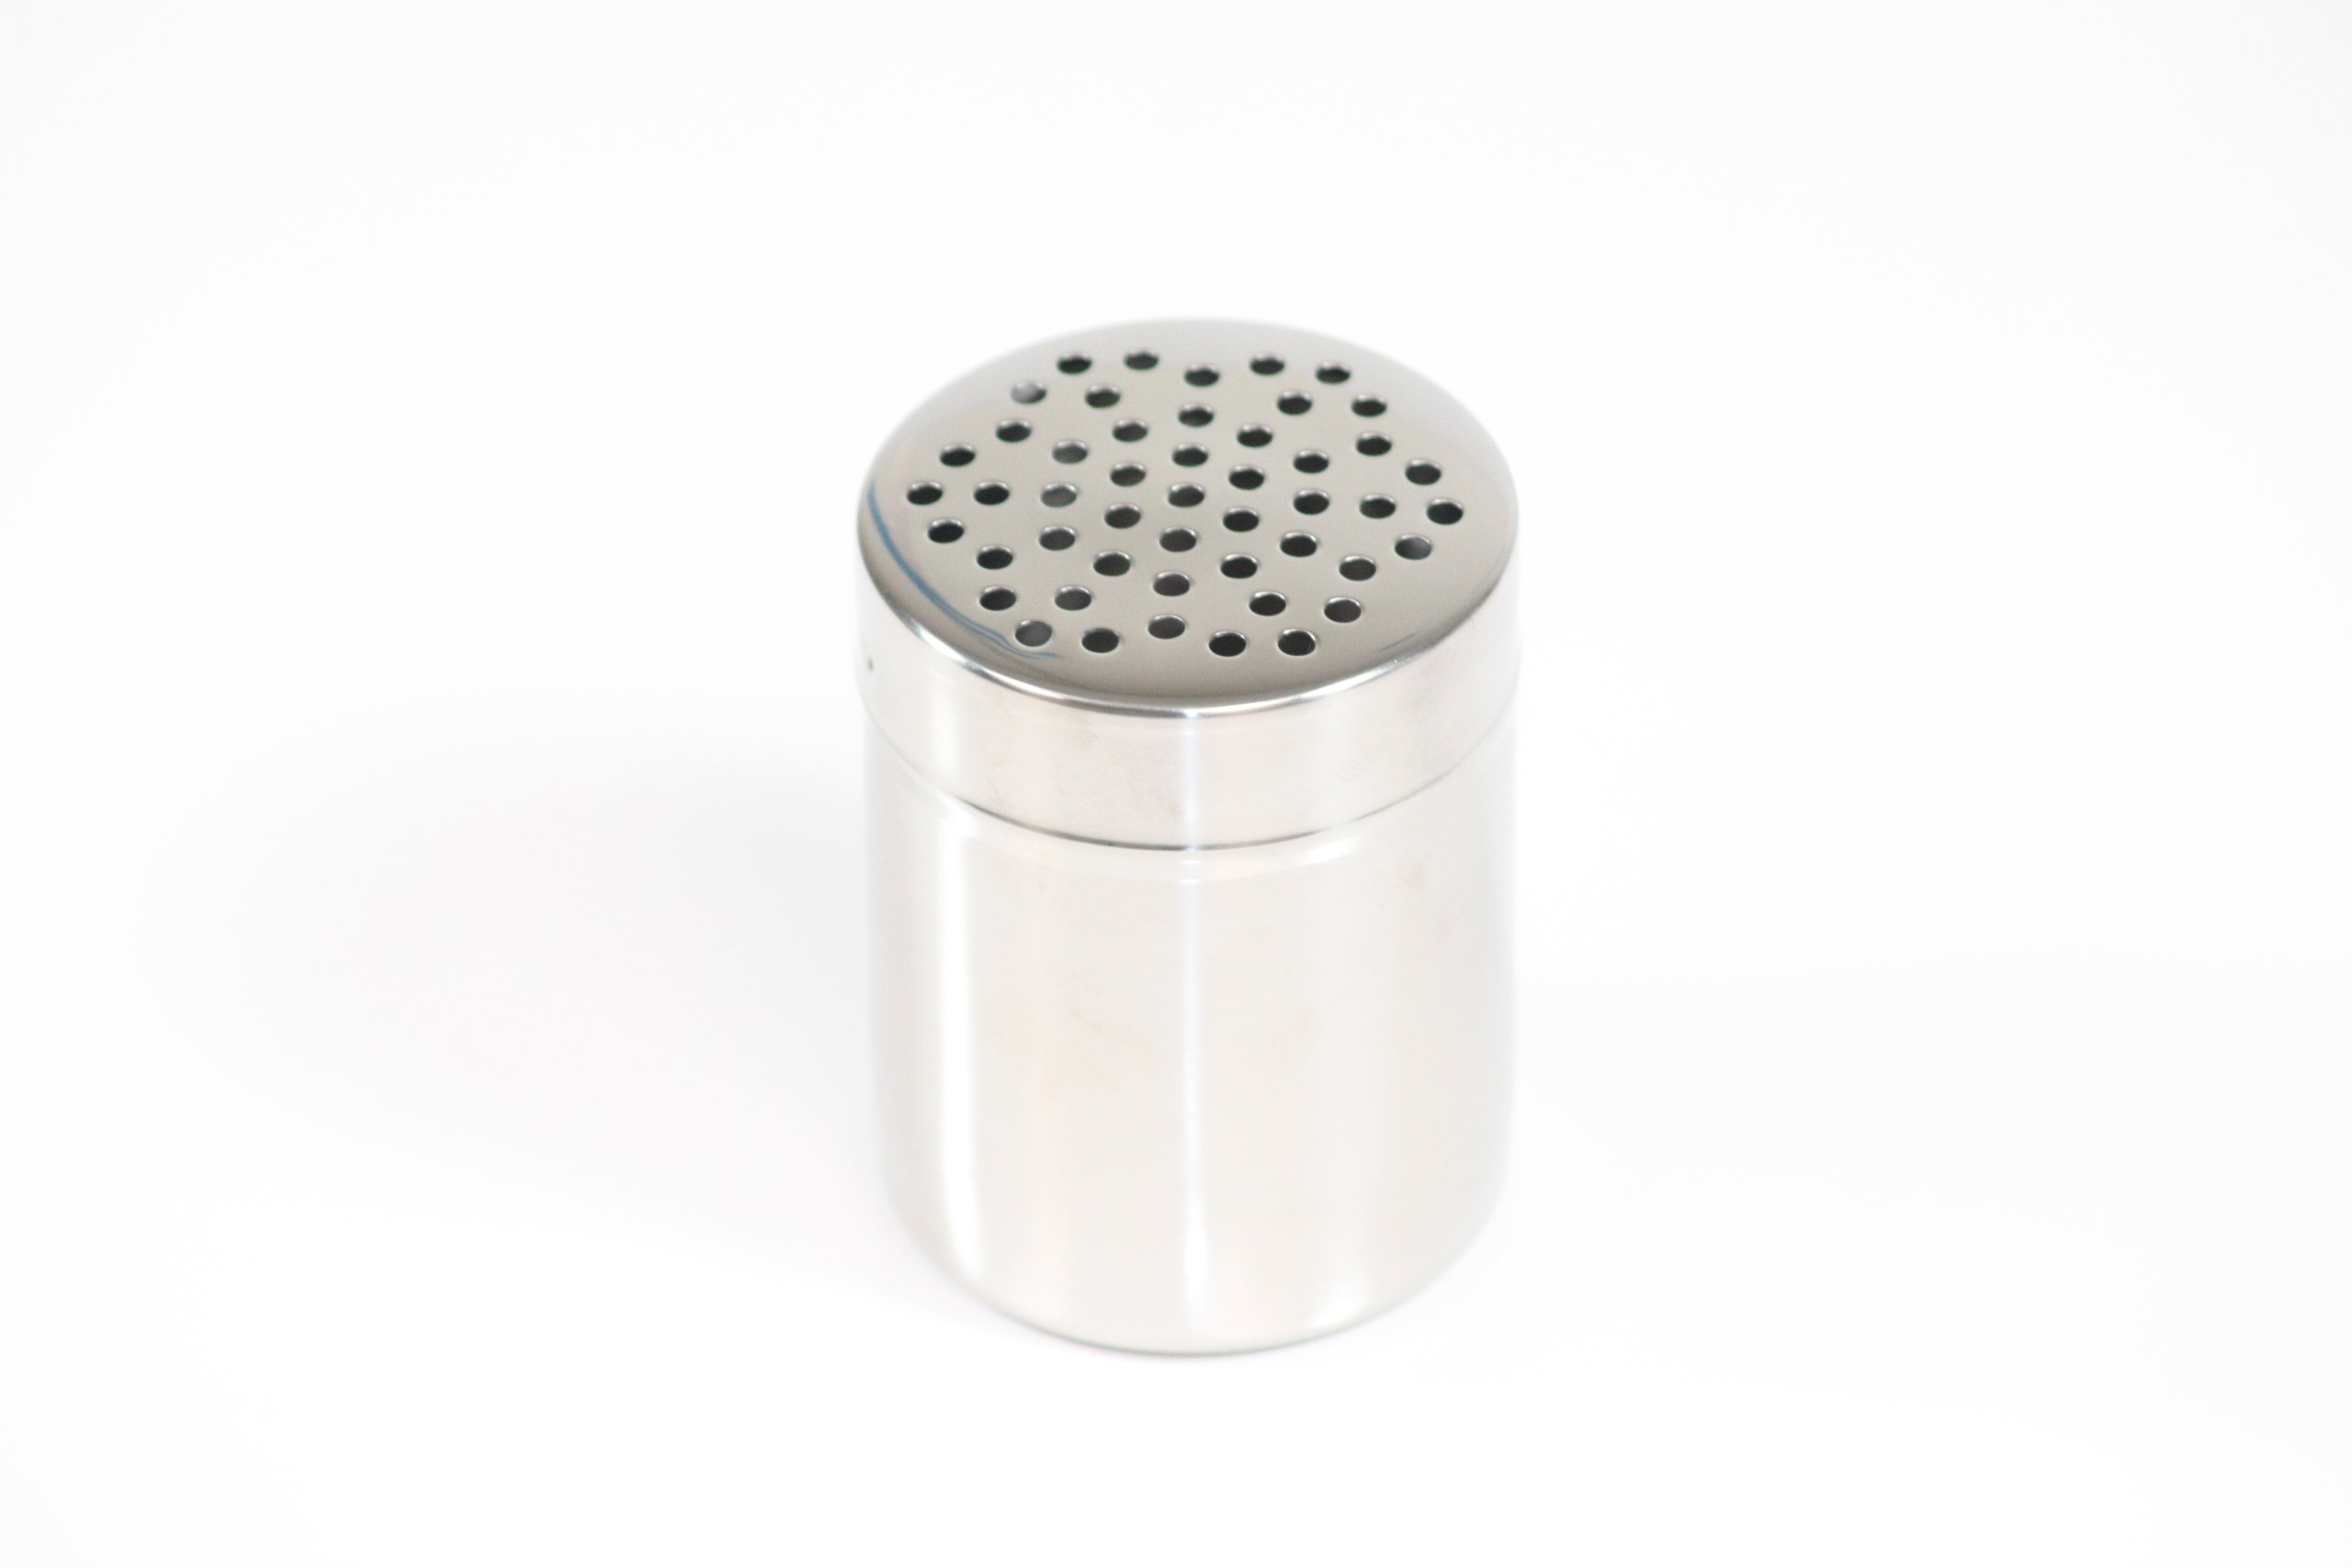 Paderno World Cuisine 1/4 Quart Stainless-steel Sugar Dredger with Coarse Holes by Paderno World Cuisine (Image #1)